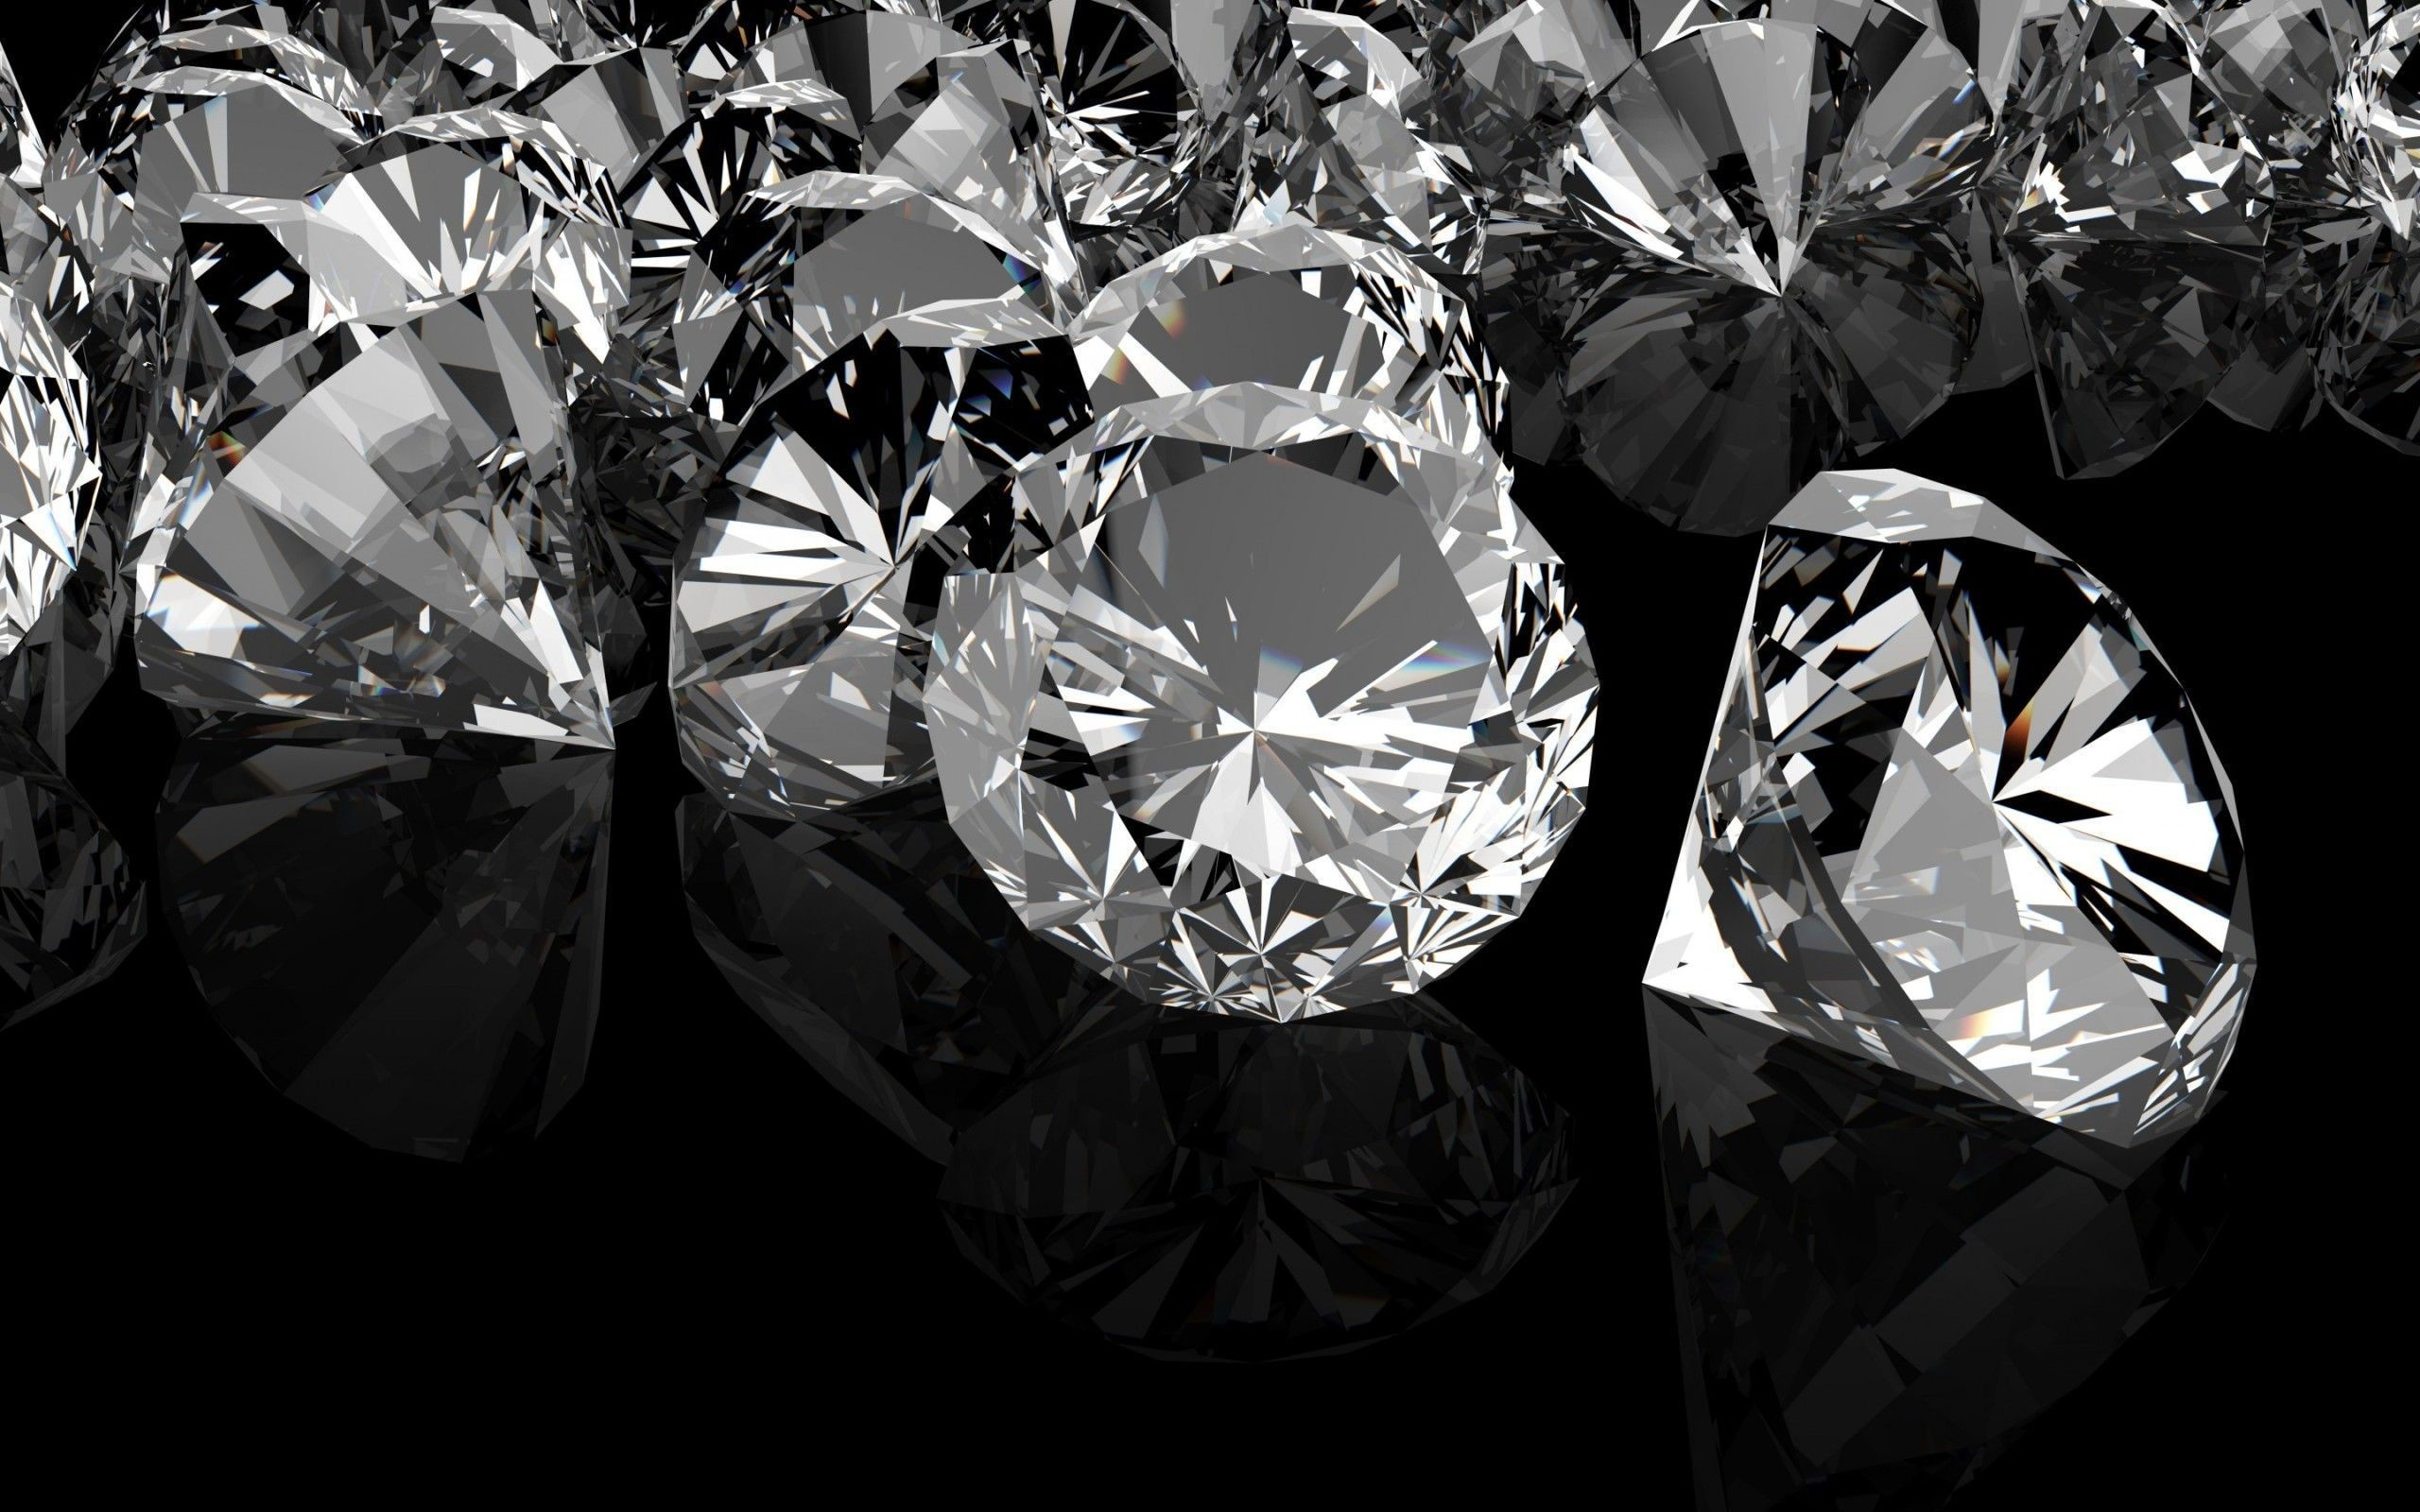 Res: 2560x1600, Black Diamond Wallpaper HD.